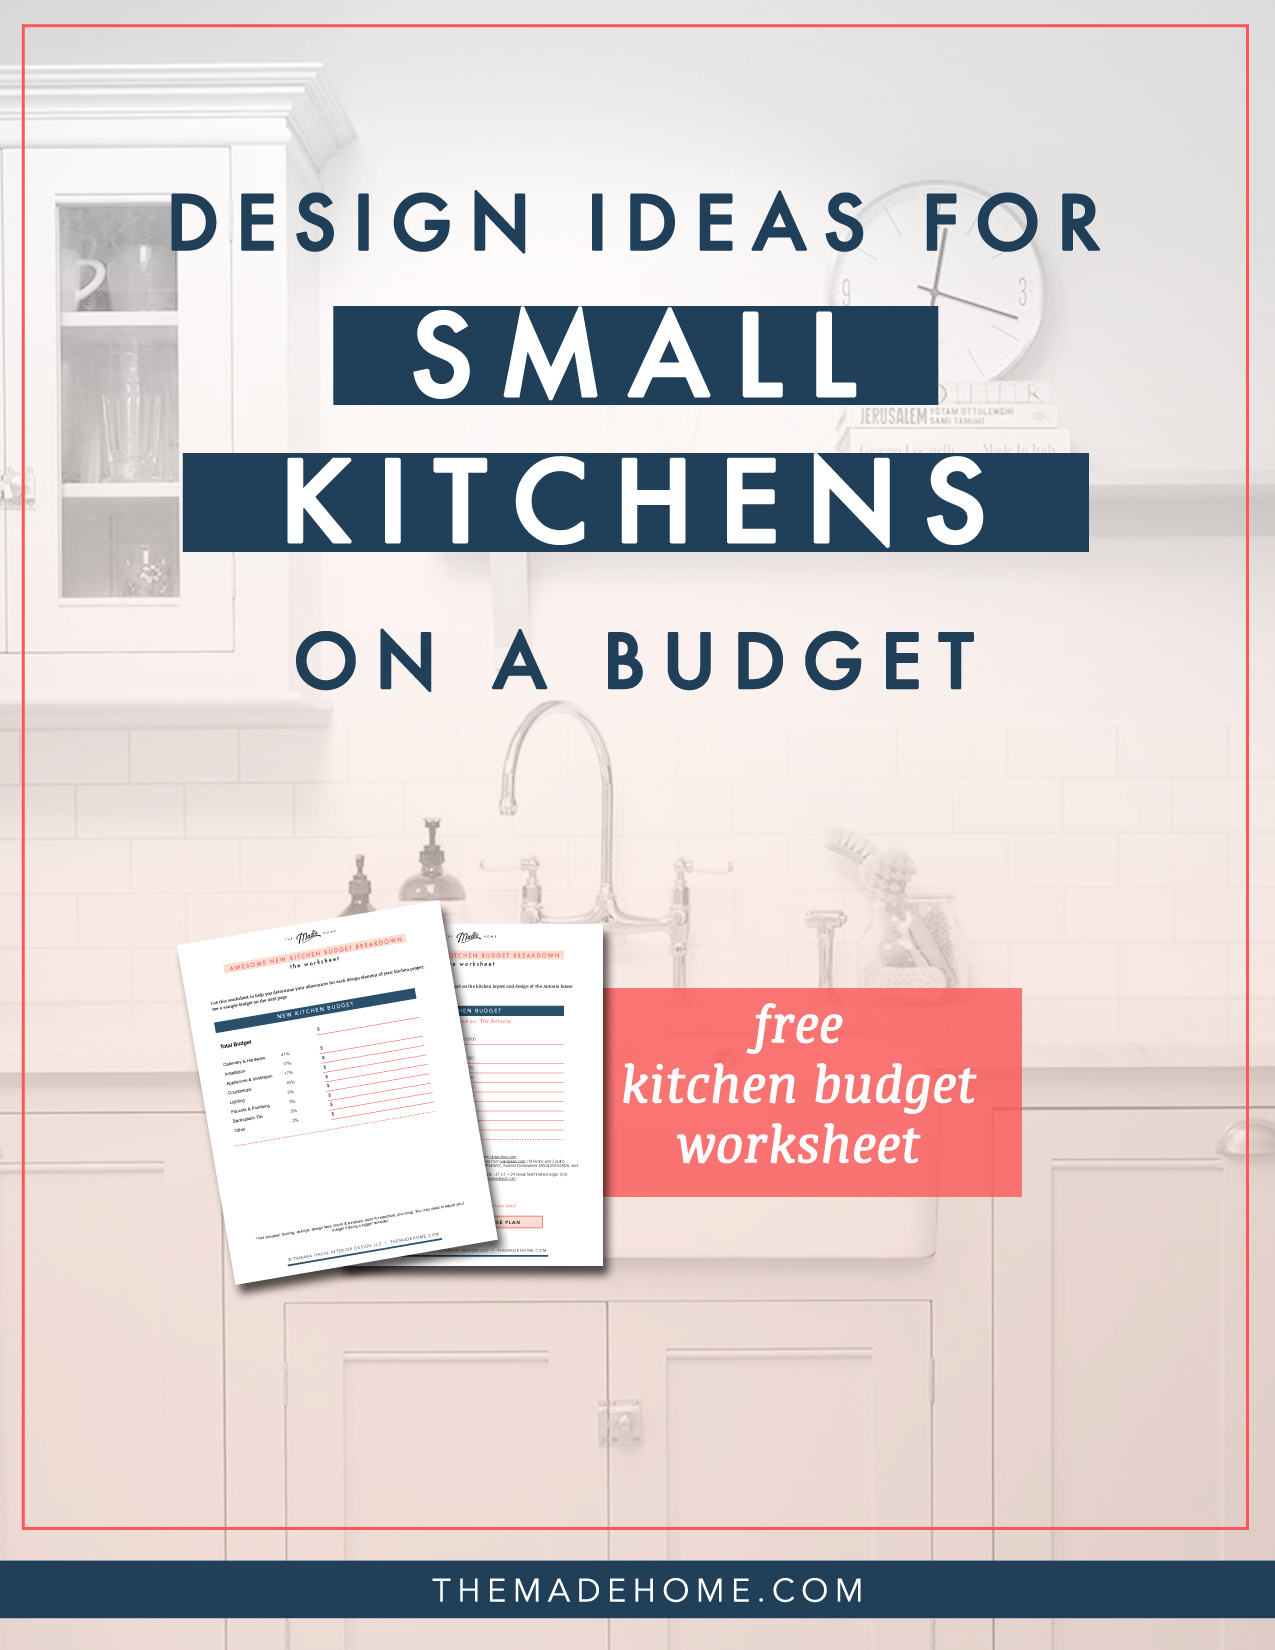 Kitchen Design Budget Calculator Get Small Kitchen Design Ideas On A Budget And A Free